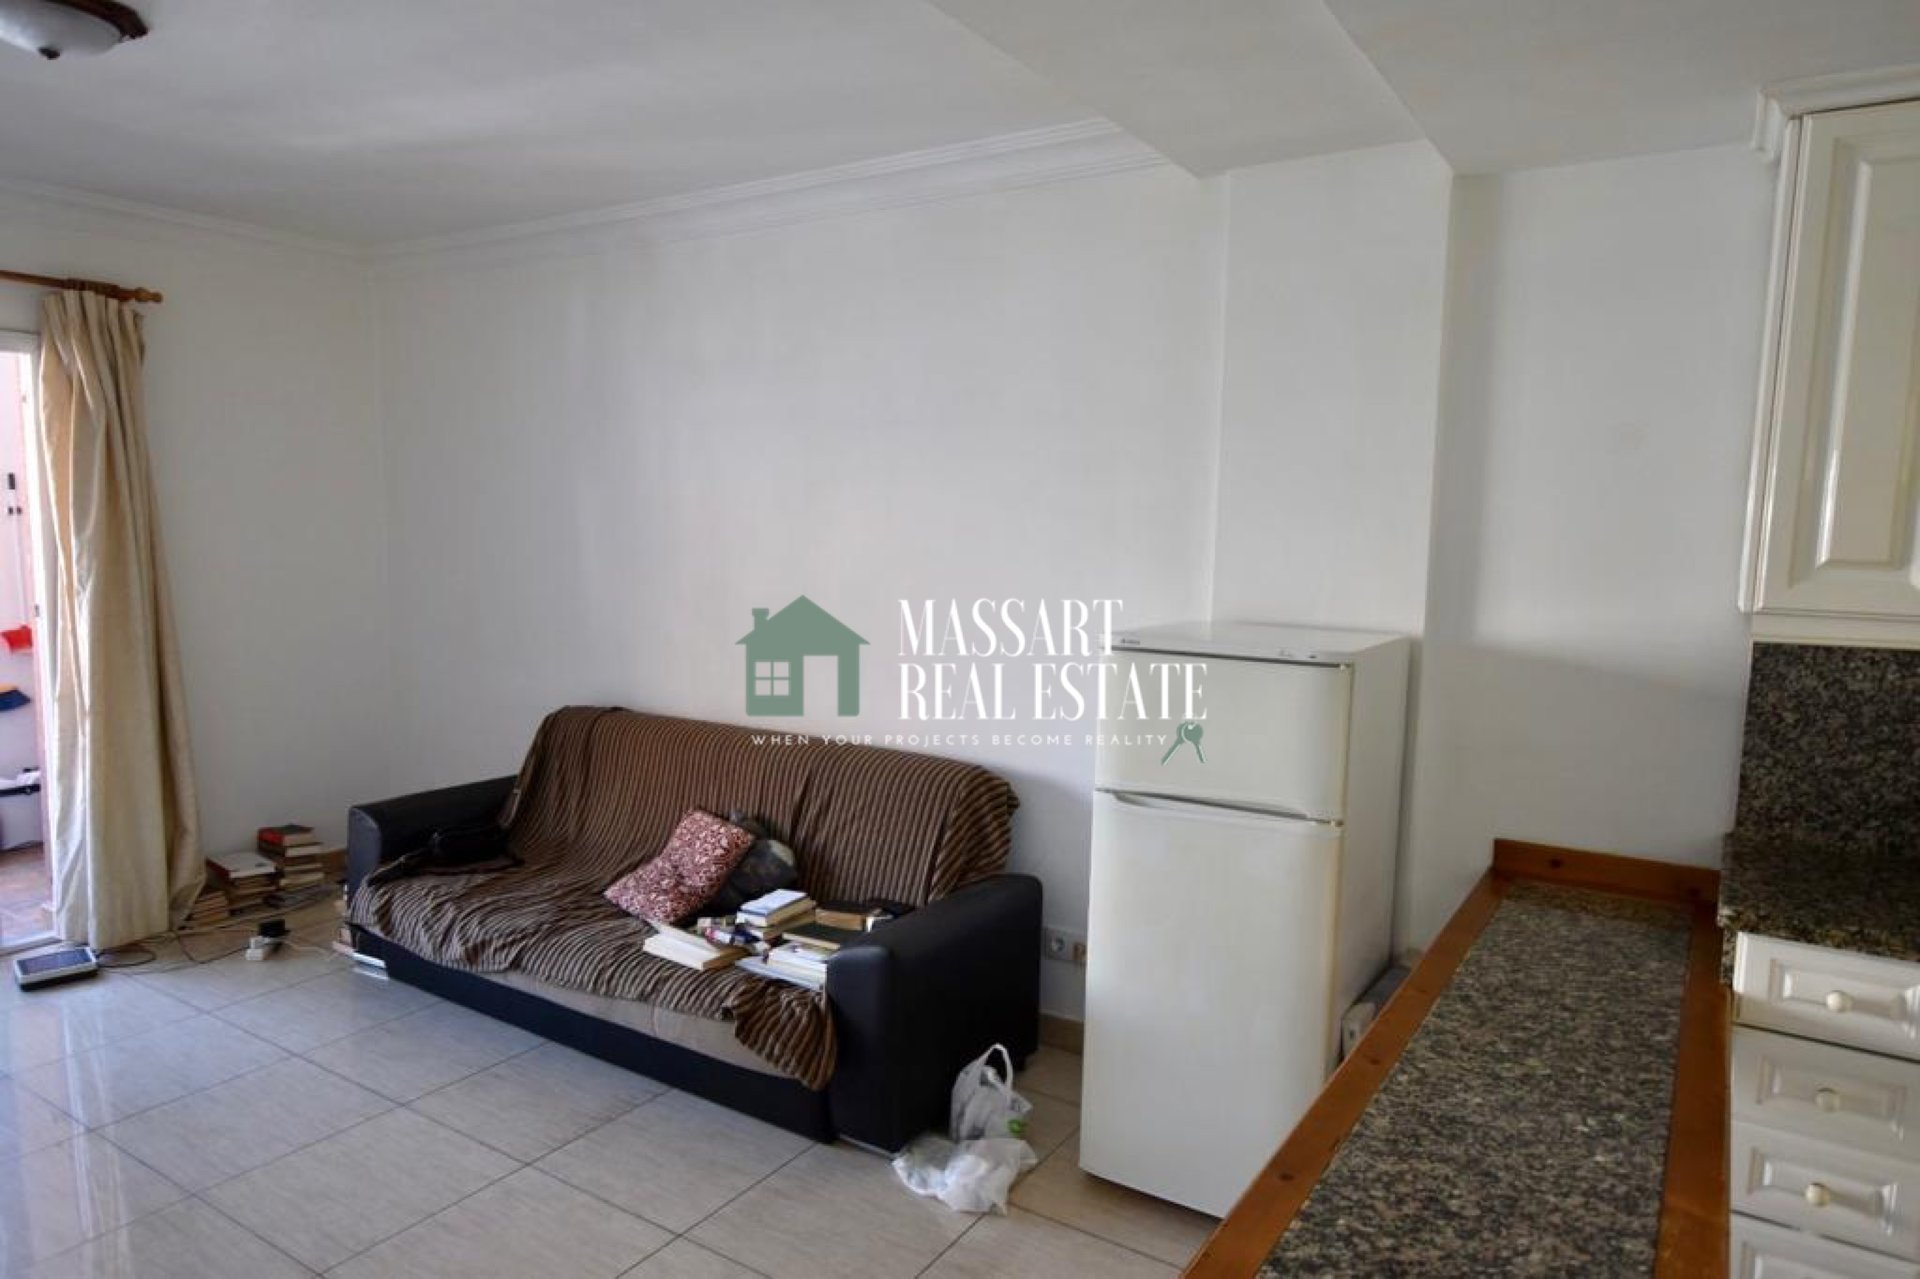 FOR SALE - Recently renovated apartment of 57 m2 located in the center of Los Cristianos, in the Marte building ... just 5 minutes from the beach!